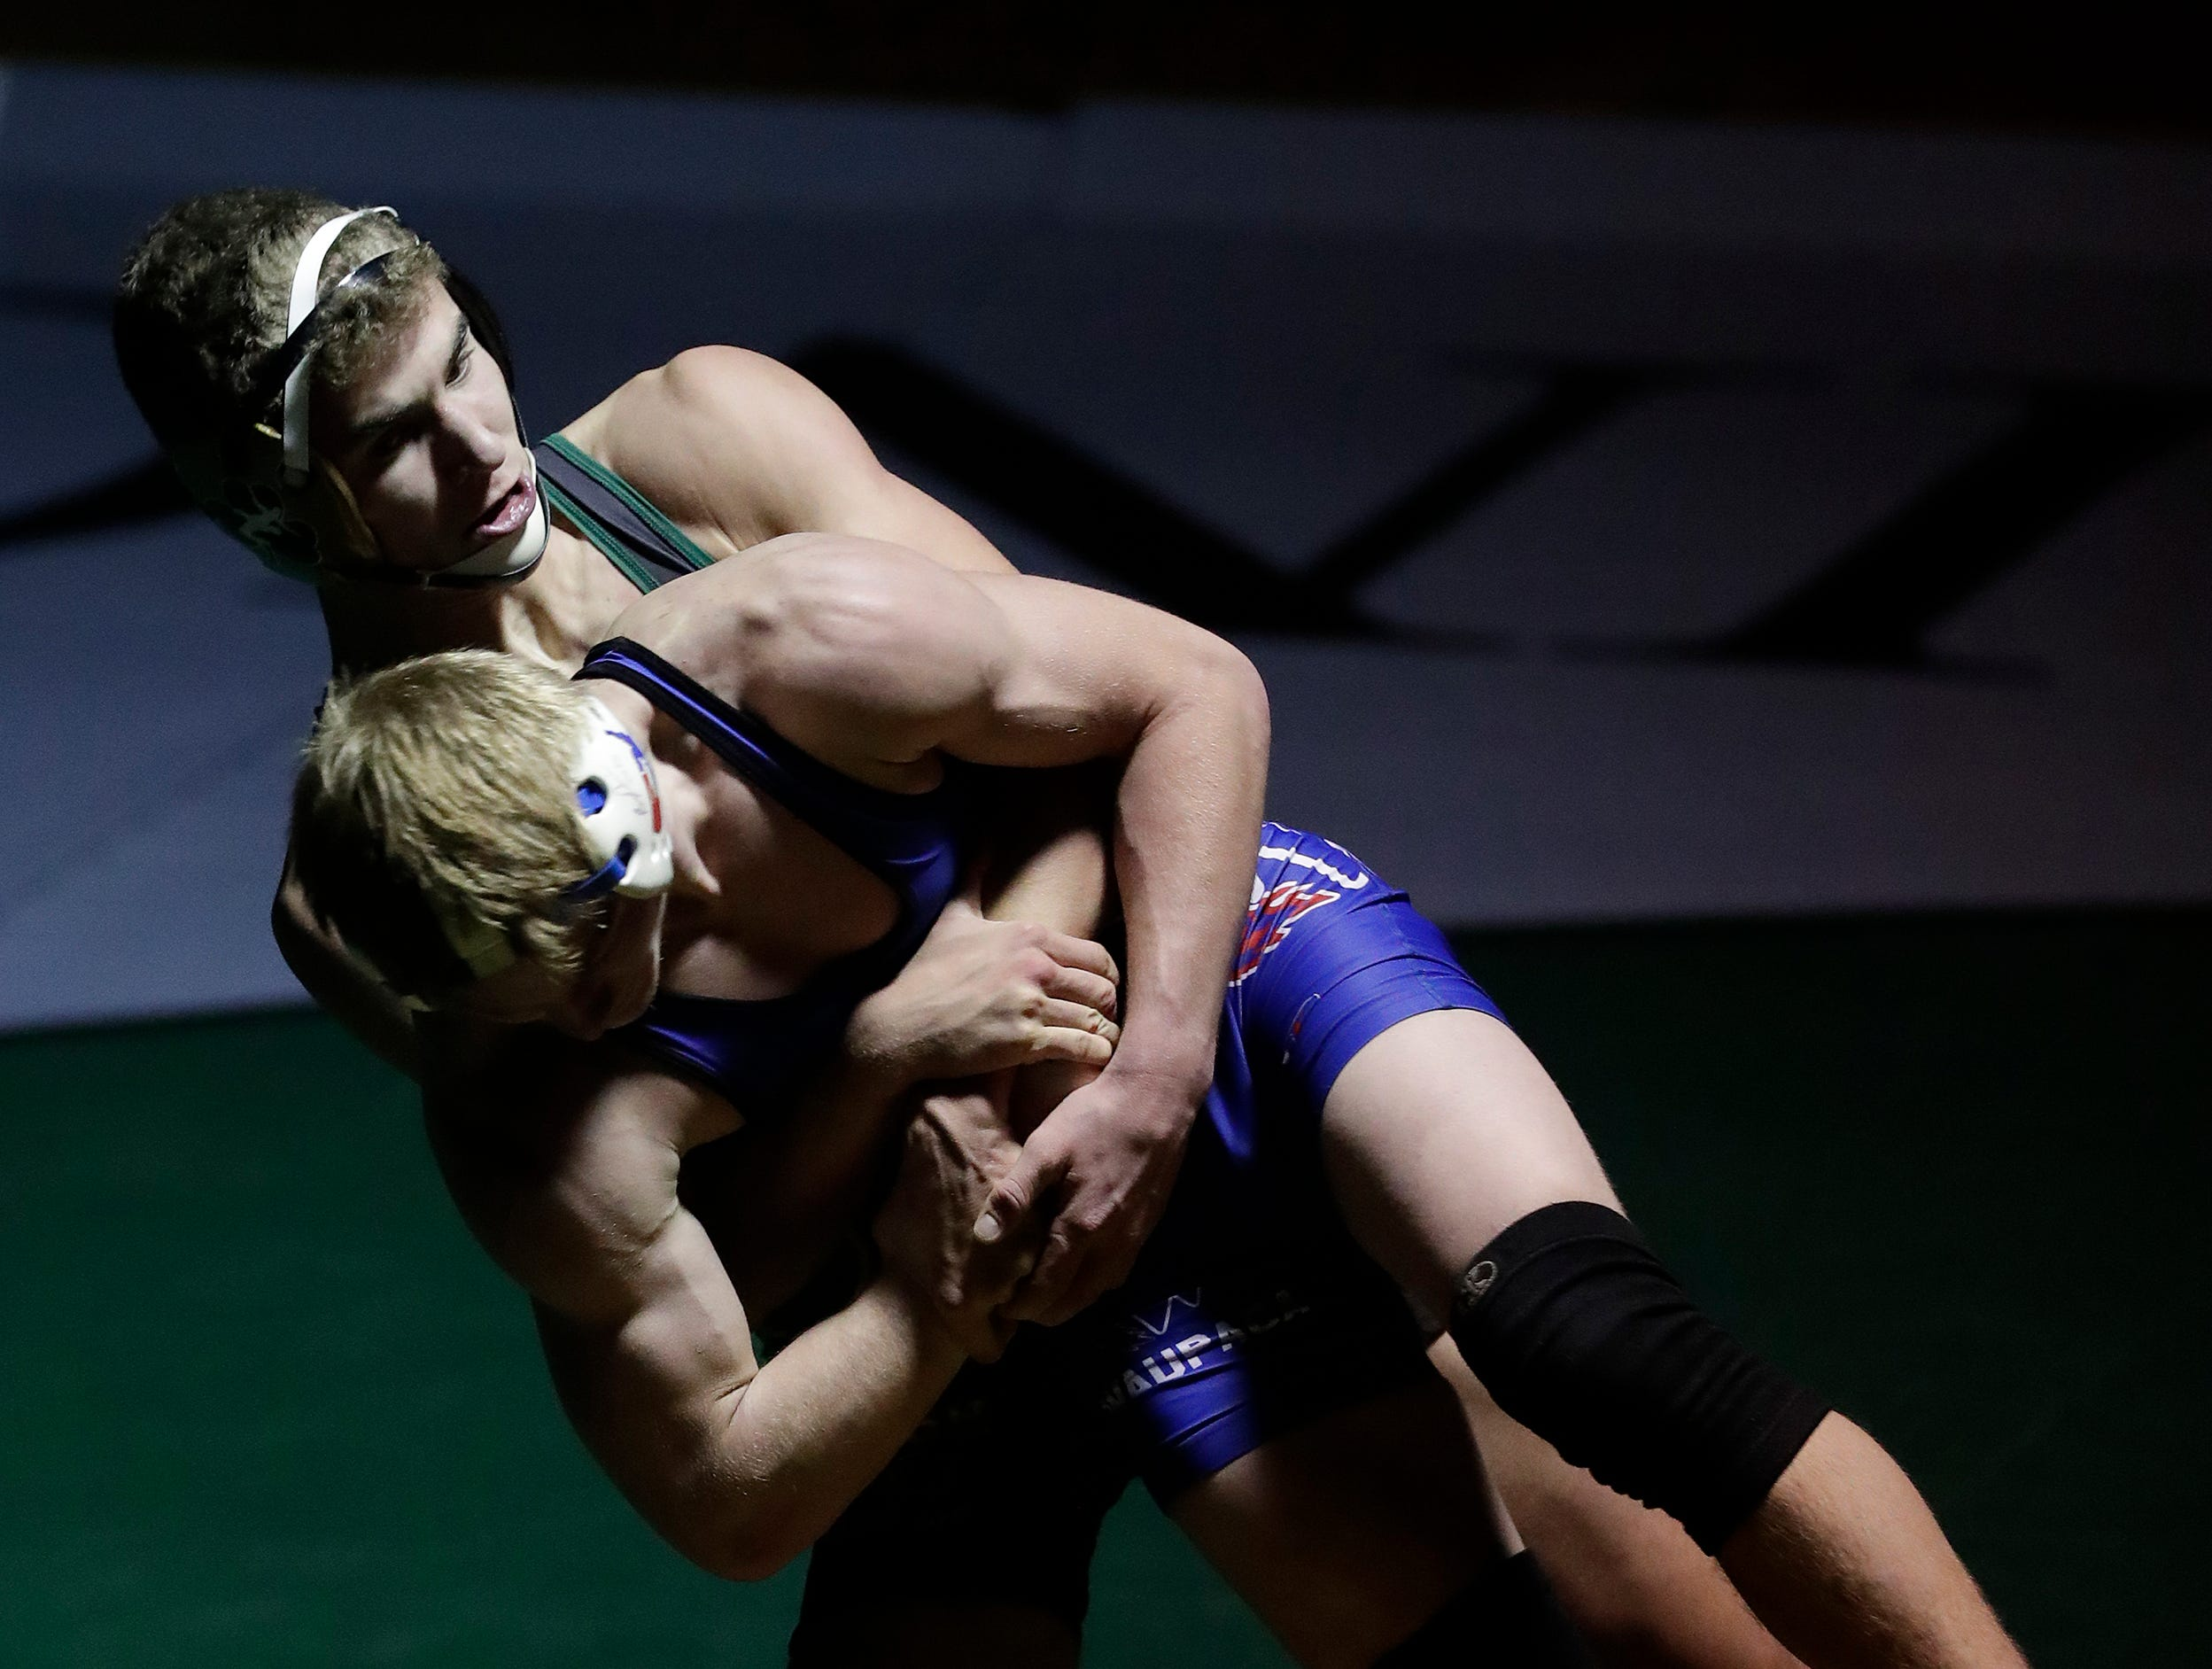 Freedom High School's Koy Murphy, back, wrestles against Waupaca High School's Colby Bernhardt during their 132-lb wrestling match Thursday, December 6, 2018, in Freedom, Wis. 